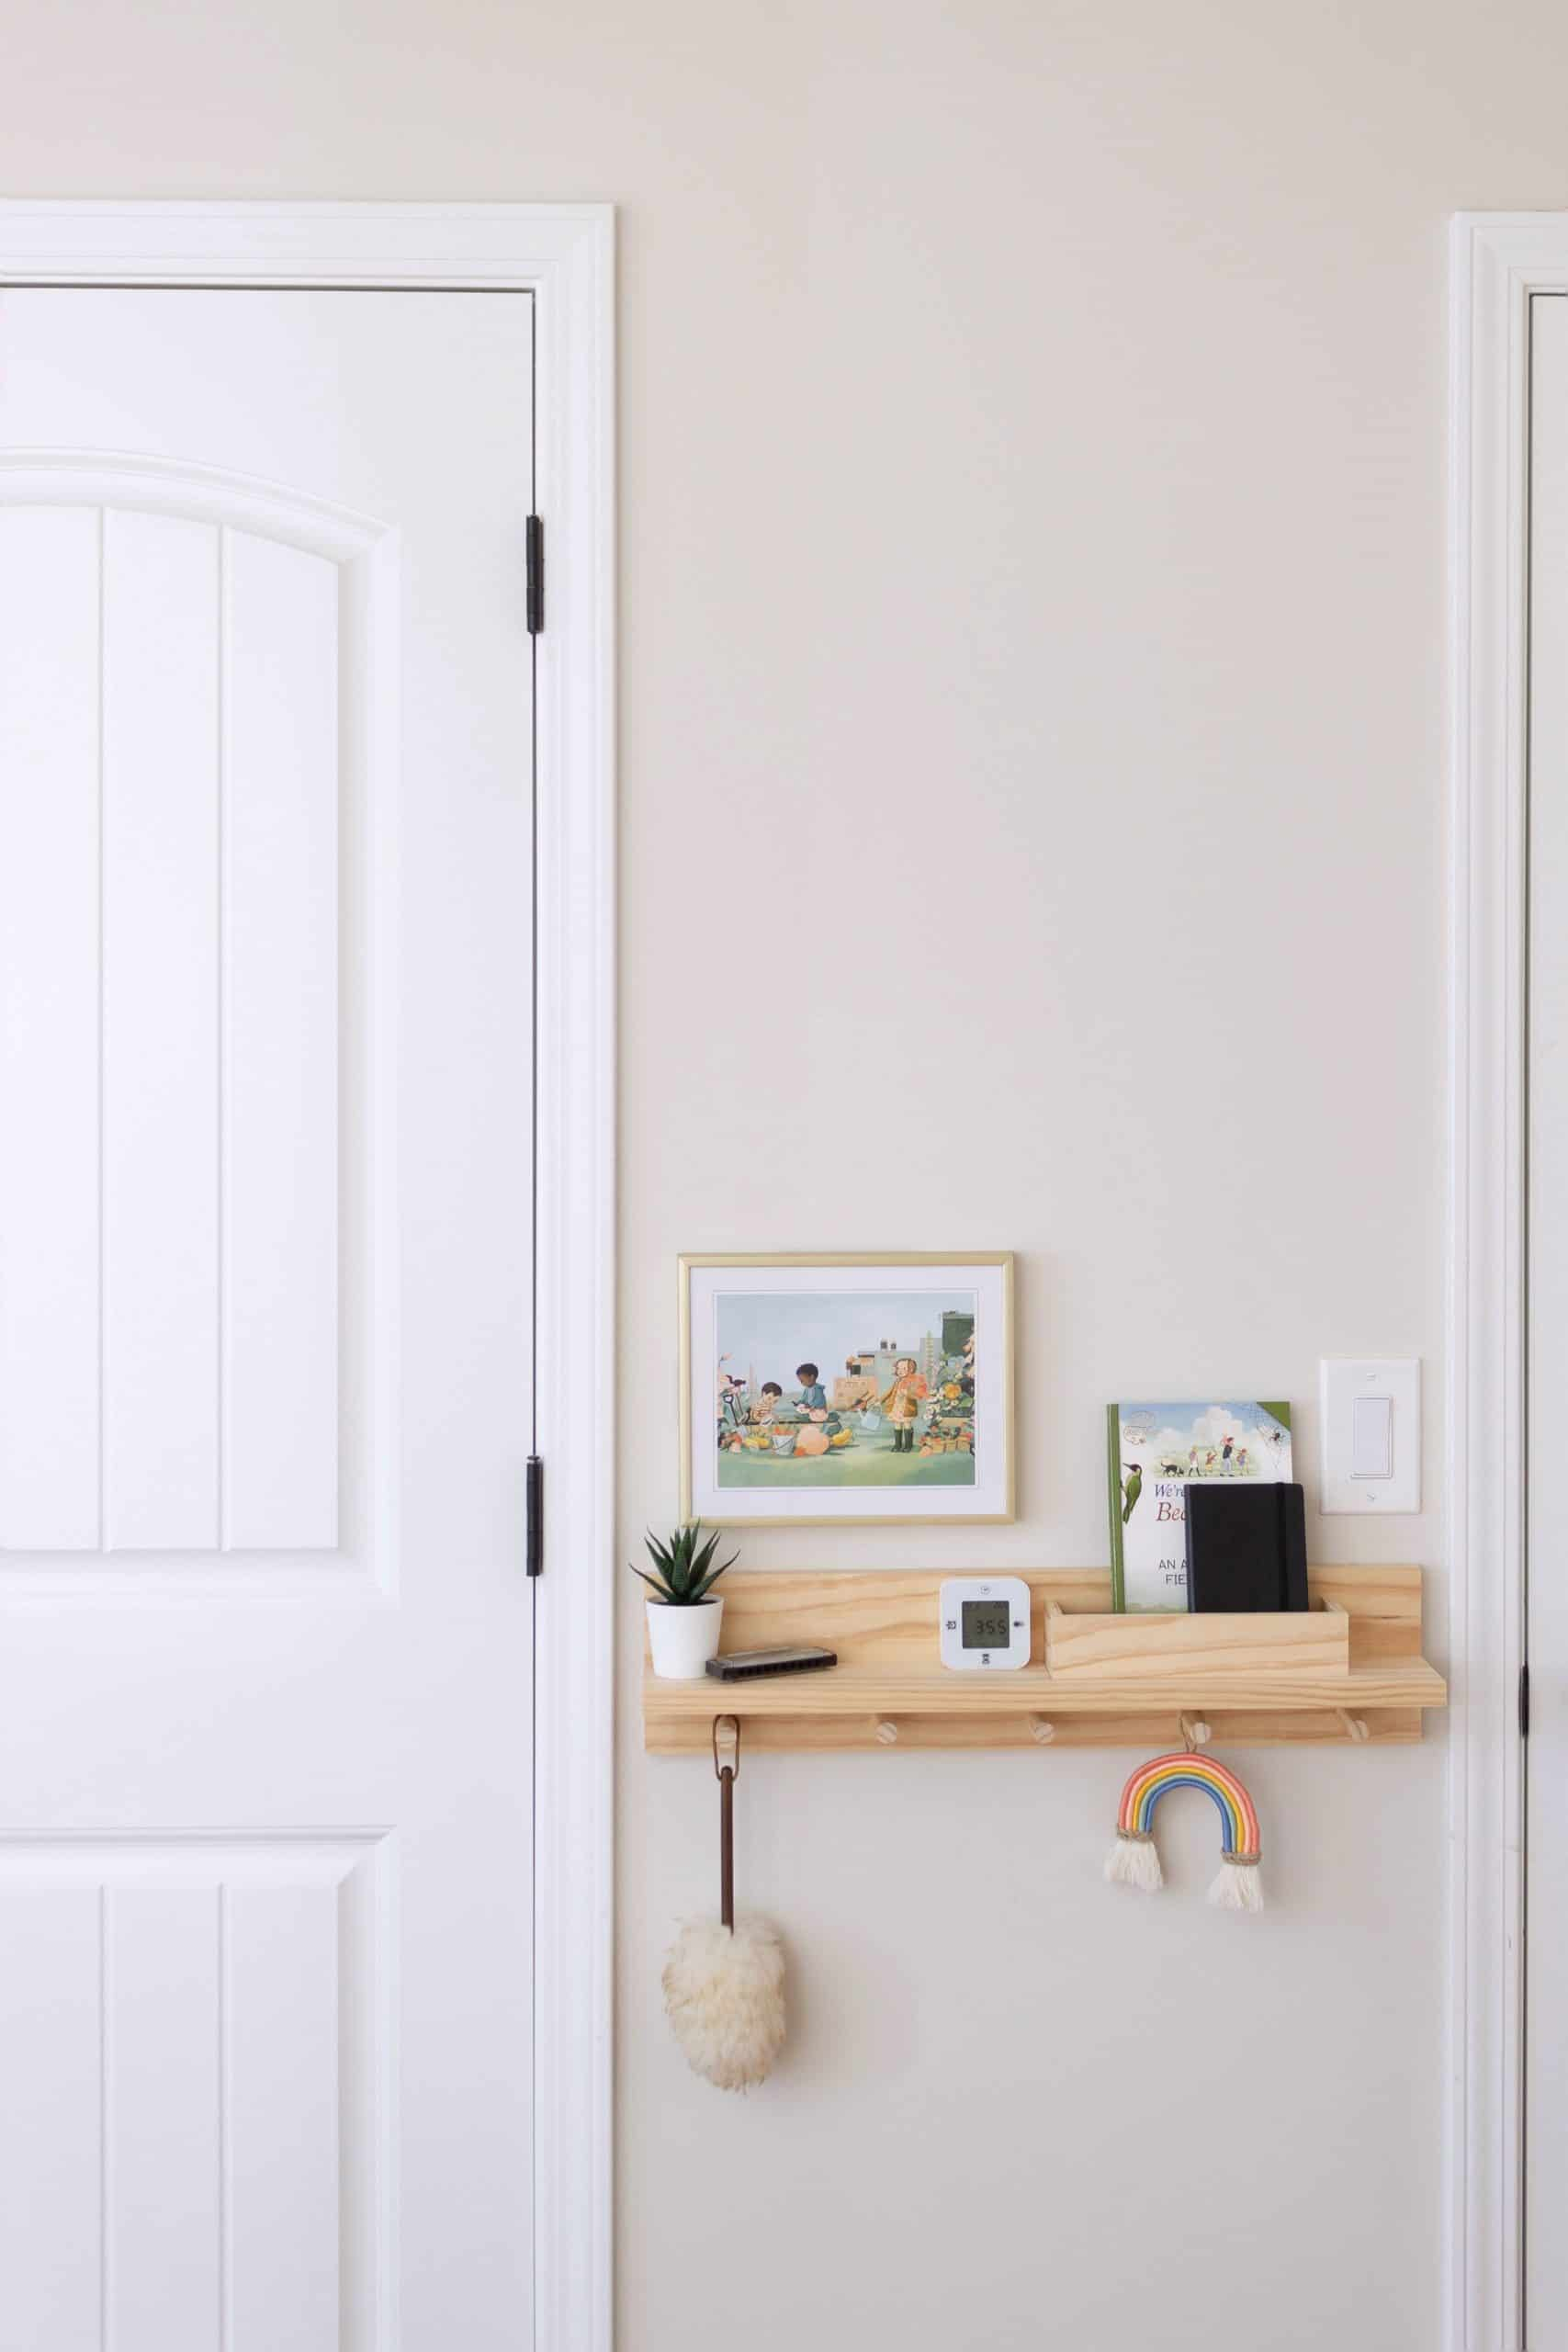 Learn how to build a wooden peg rail shelf with letter bin to help control the clutter in an entryway or bedroom area. It's a perfect small-space organization item that can be built for as little as $30 dollars! See the complete tutorial at www.freeandunfettered.com.